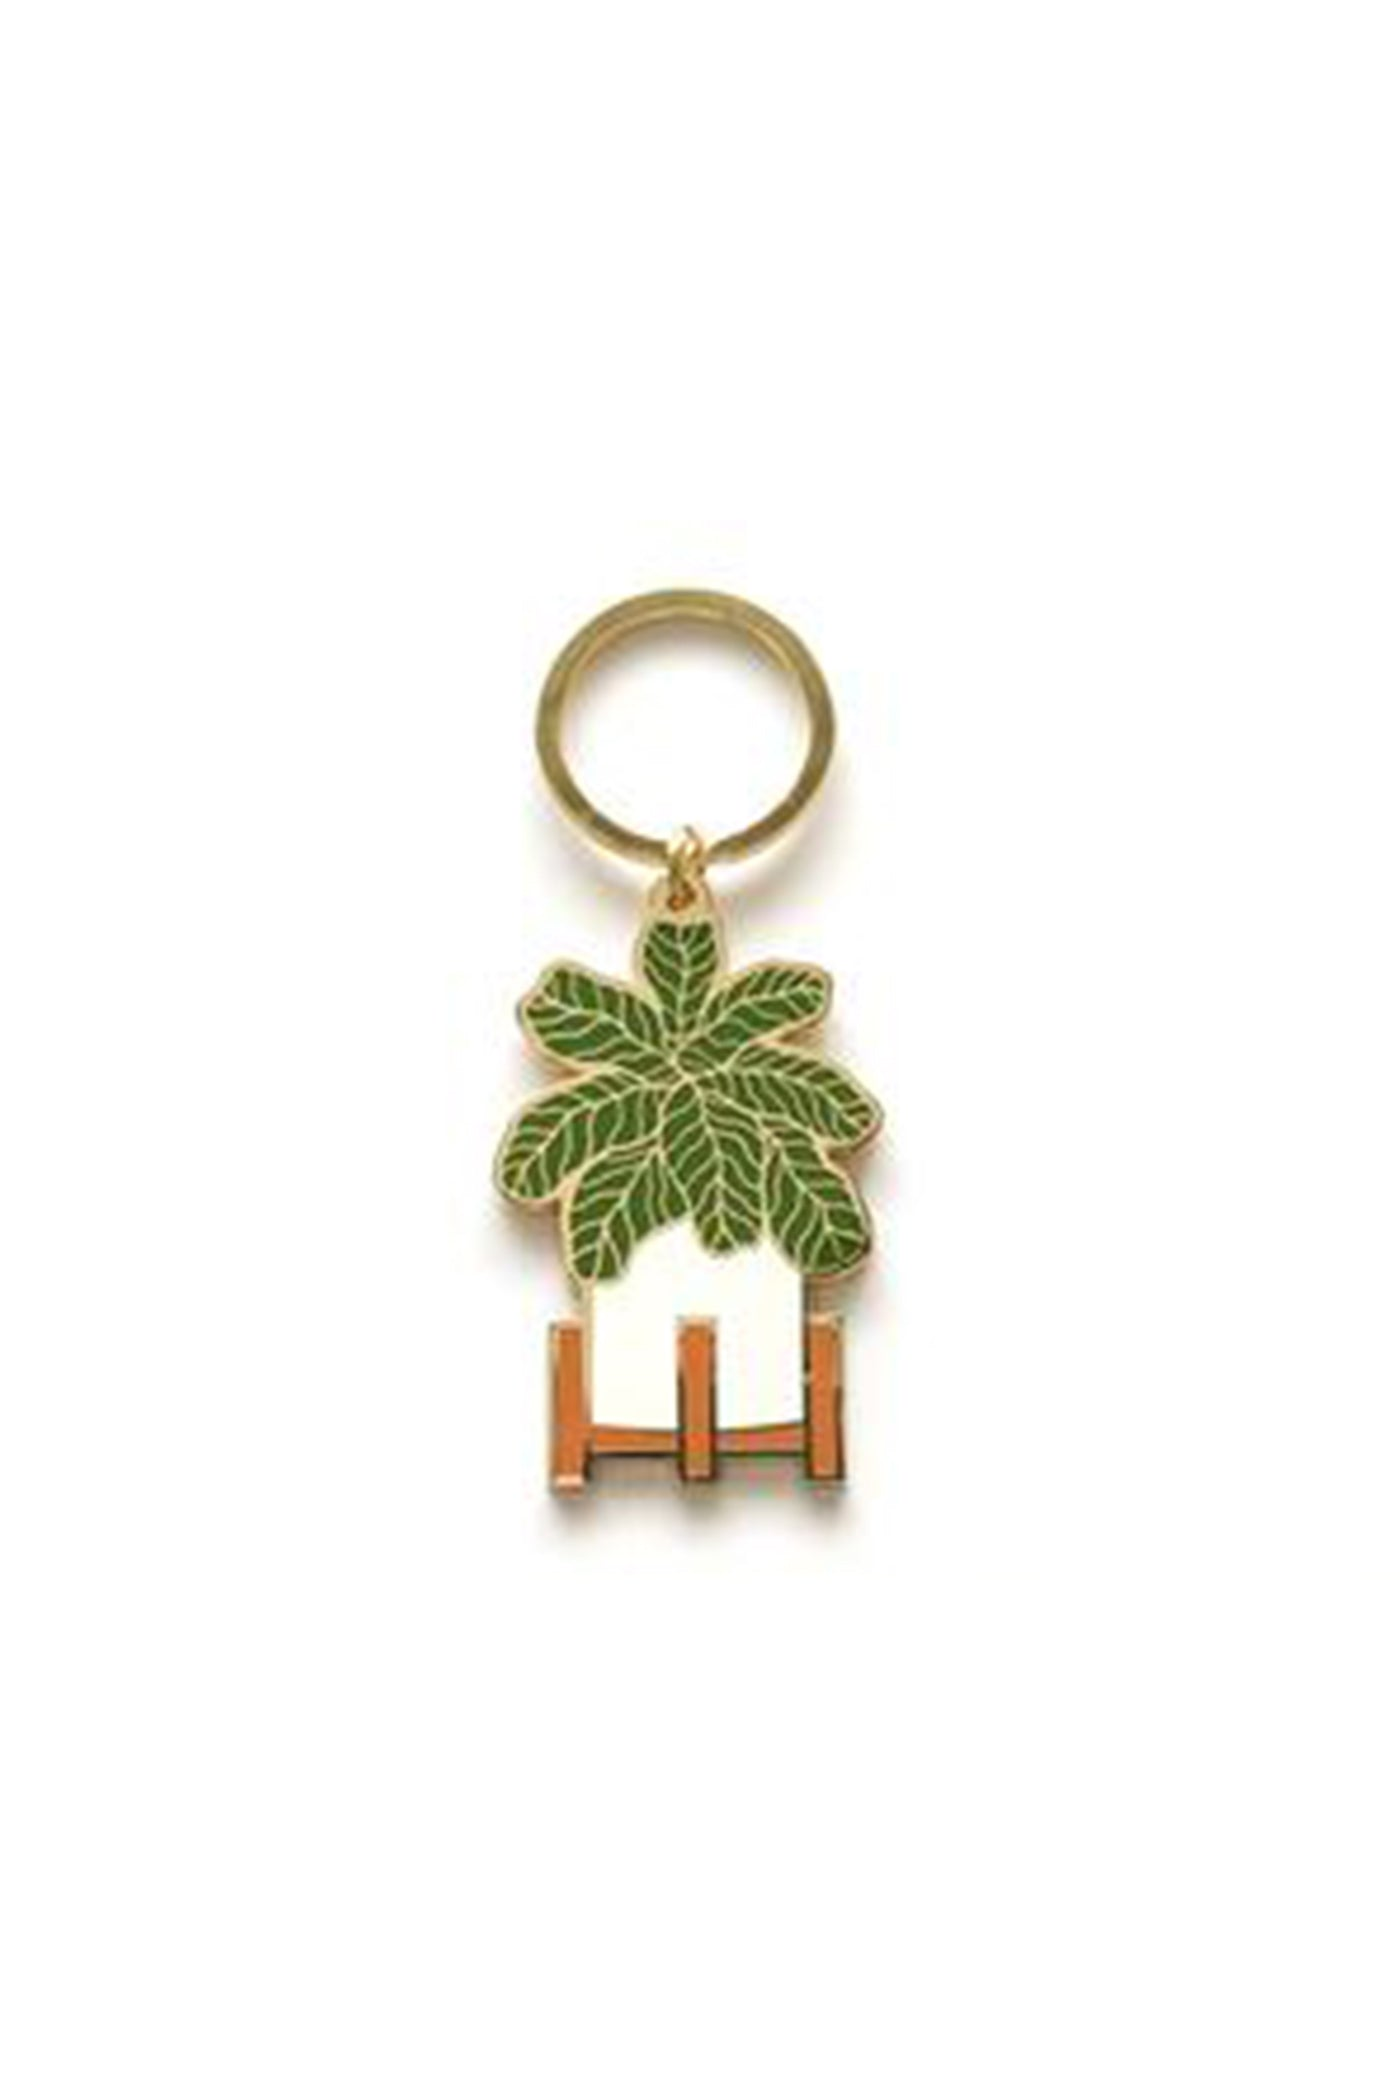 Fiddle Leaf Fig Keychain By Ancho Paper Co.